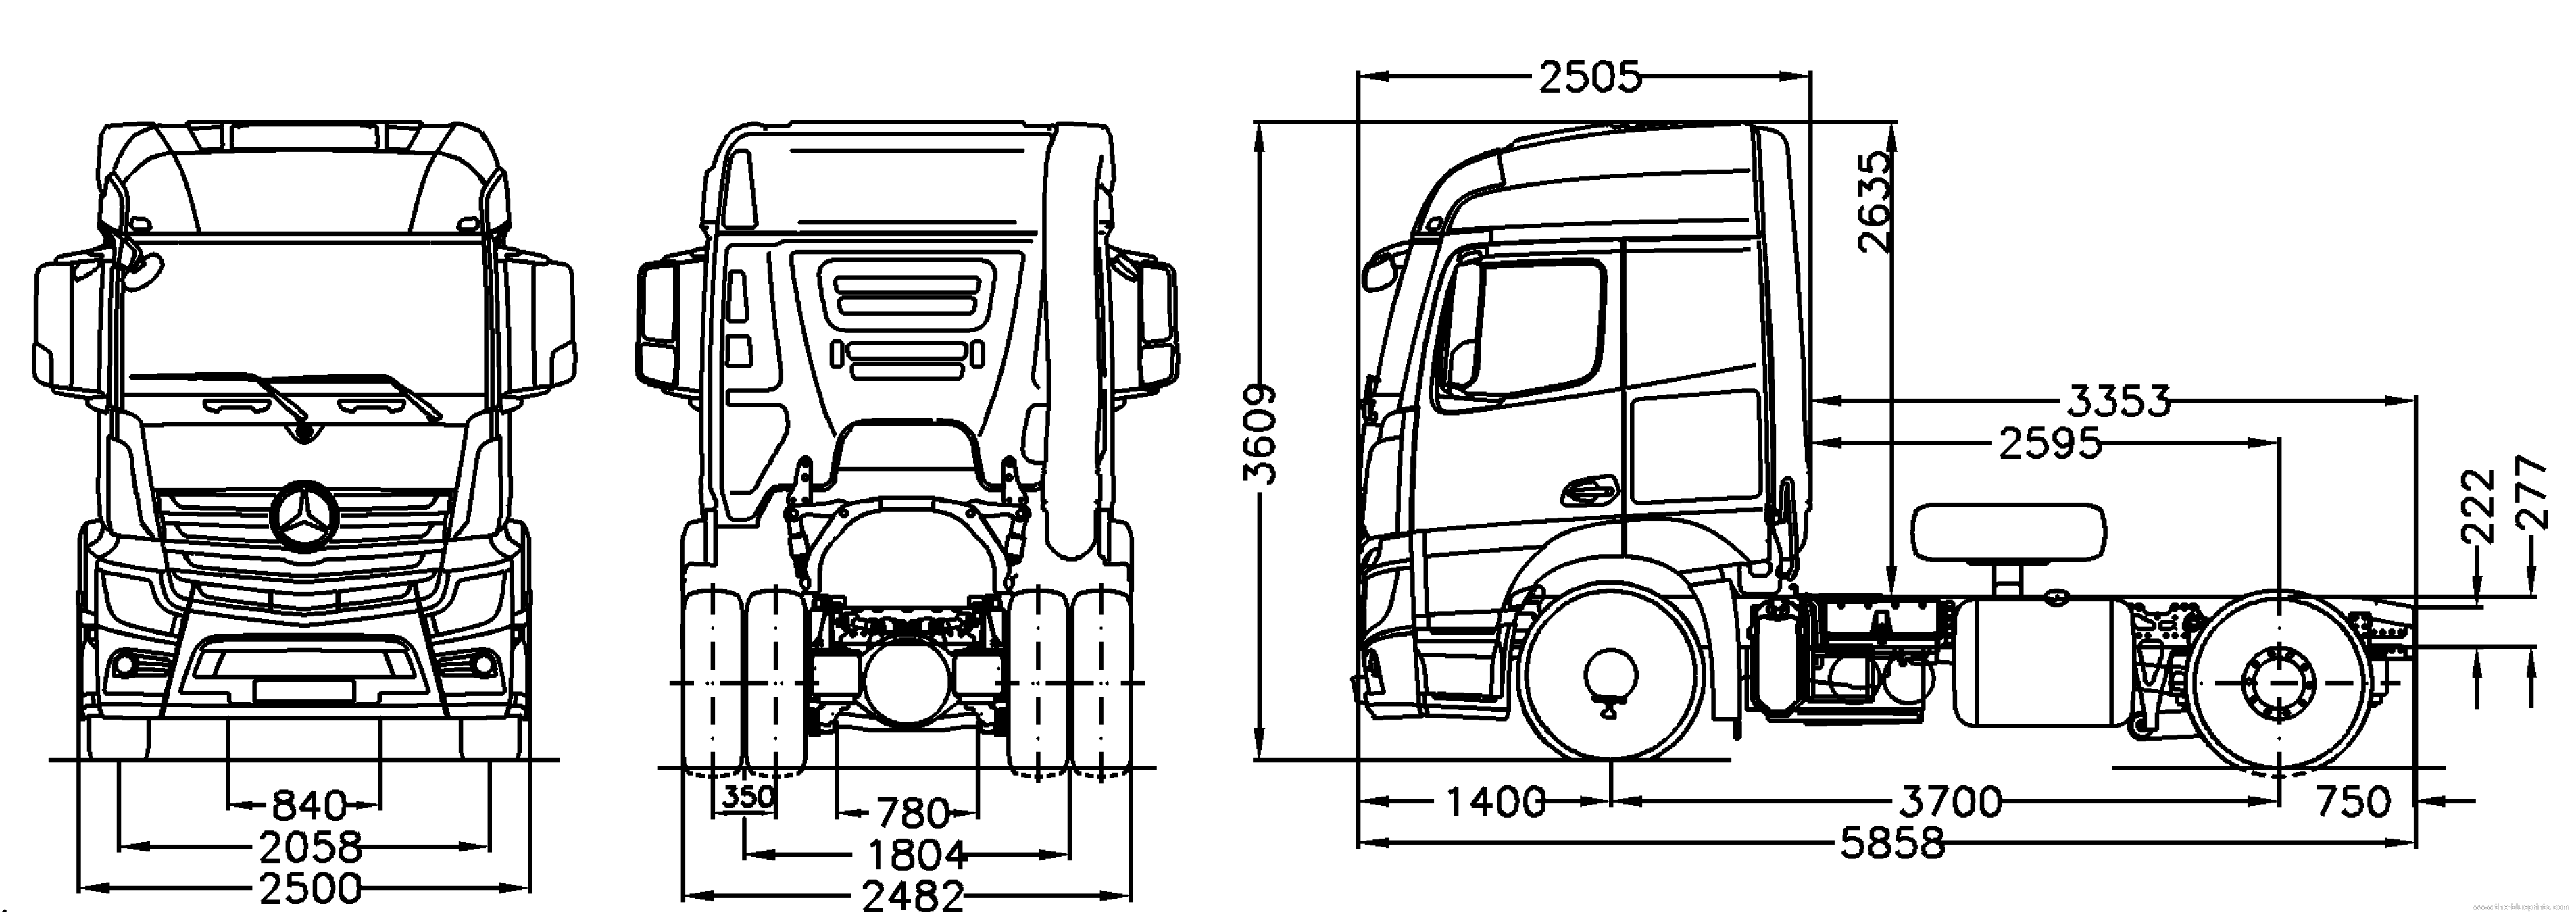 Semi Tanker Suspension Diagram on t82820 1999 2000 2001 rs swap wrx sti help me add notes